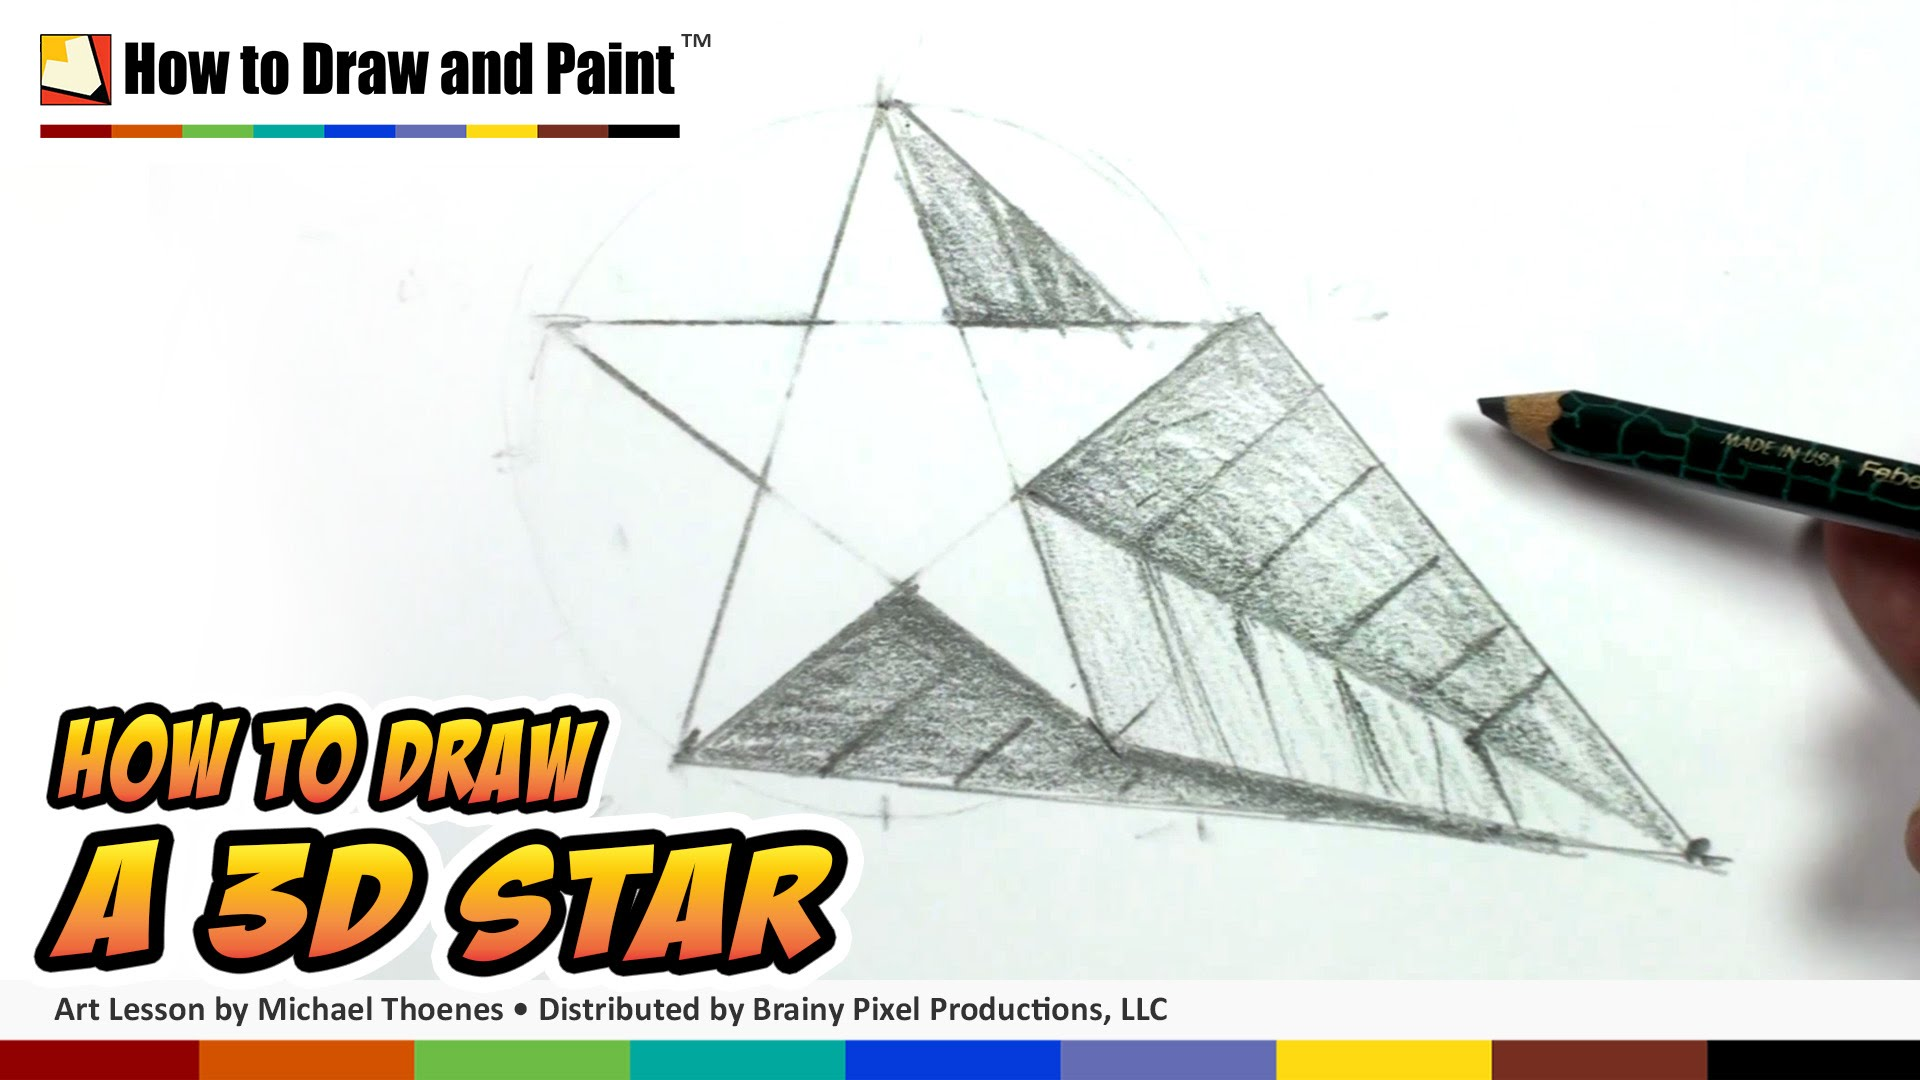 Drawn shapes perspective drawing Star Star Star Kids a